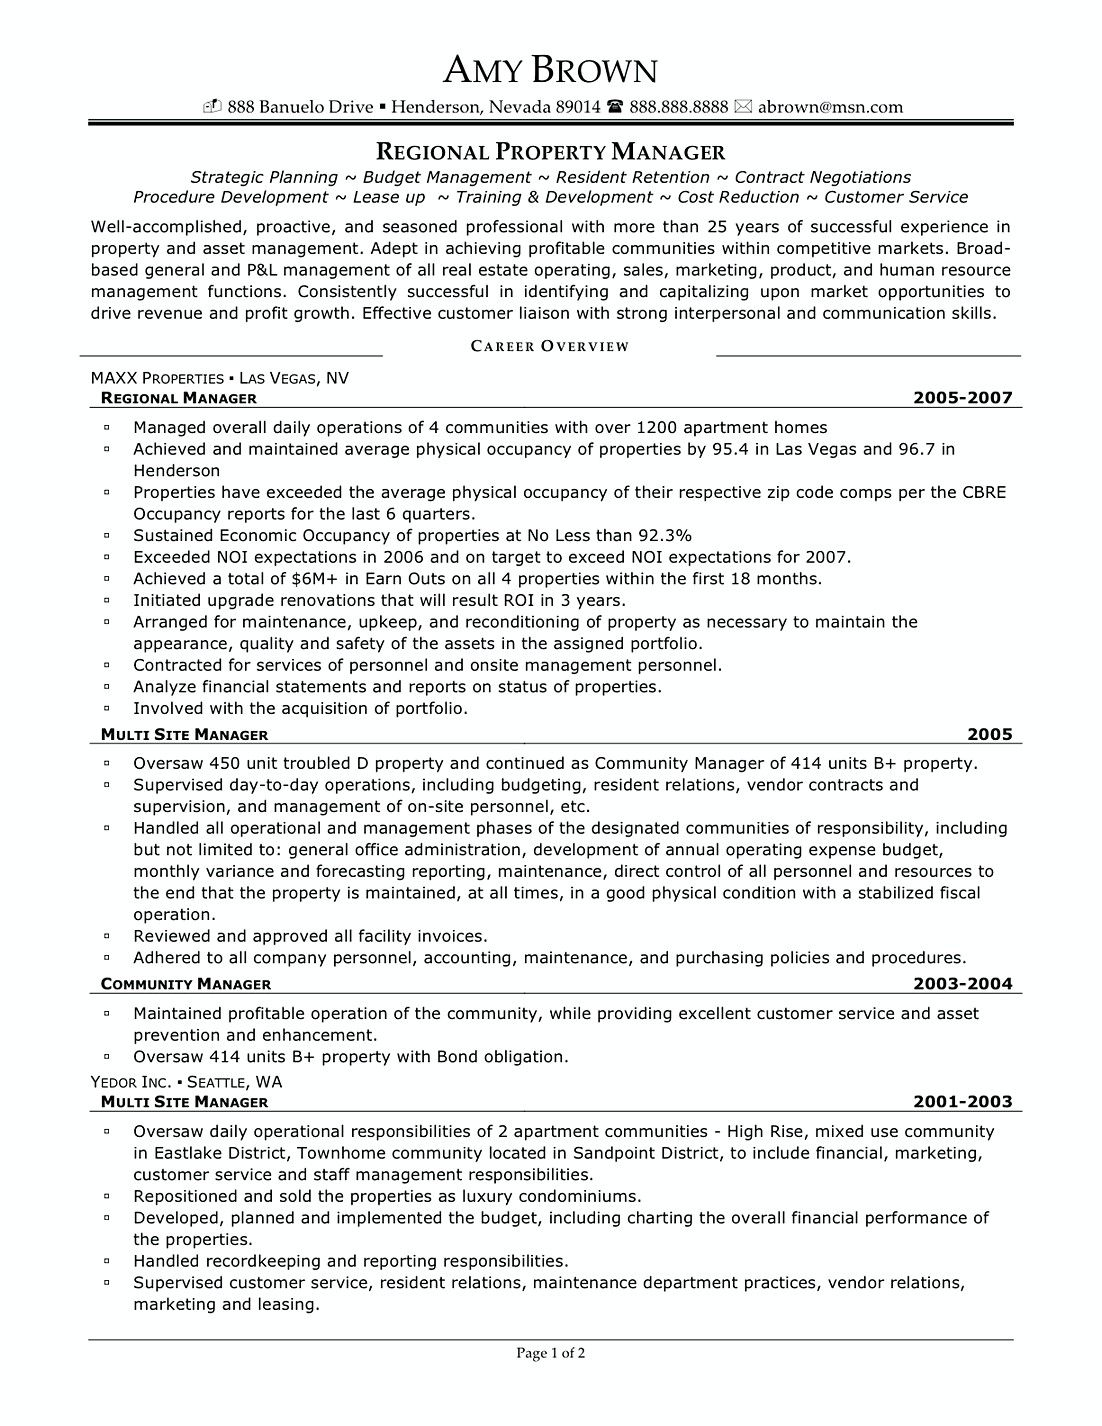 Regional Property Manager Resume Samples  Commercial Property